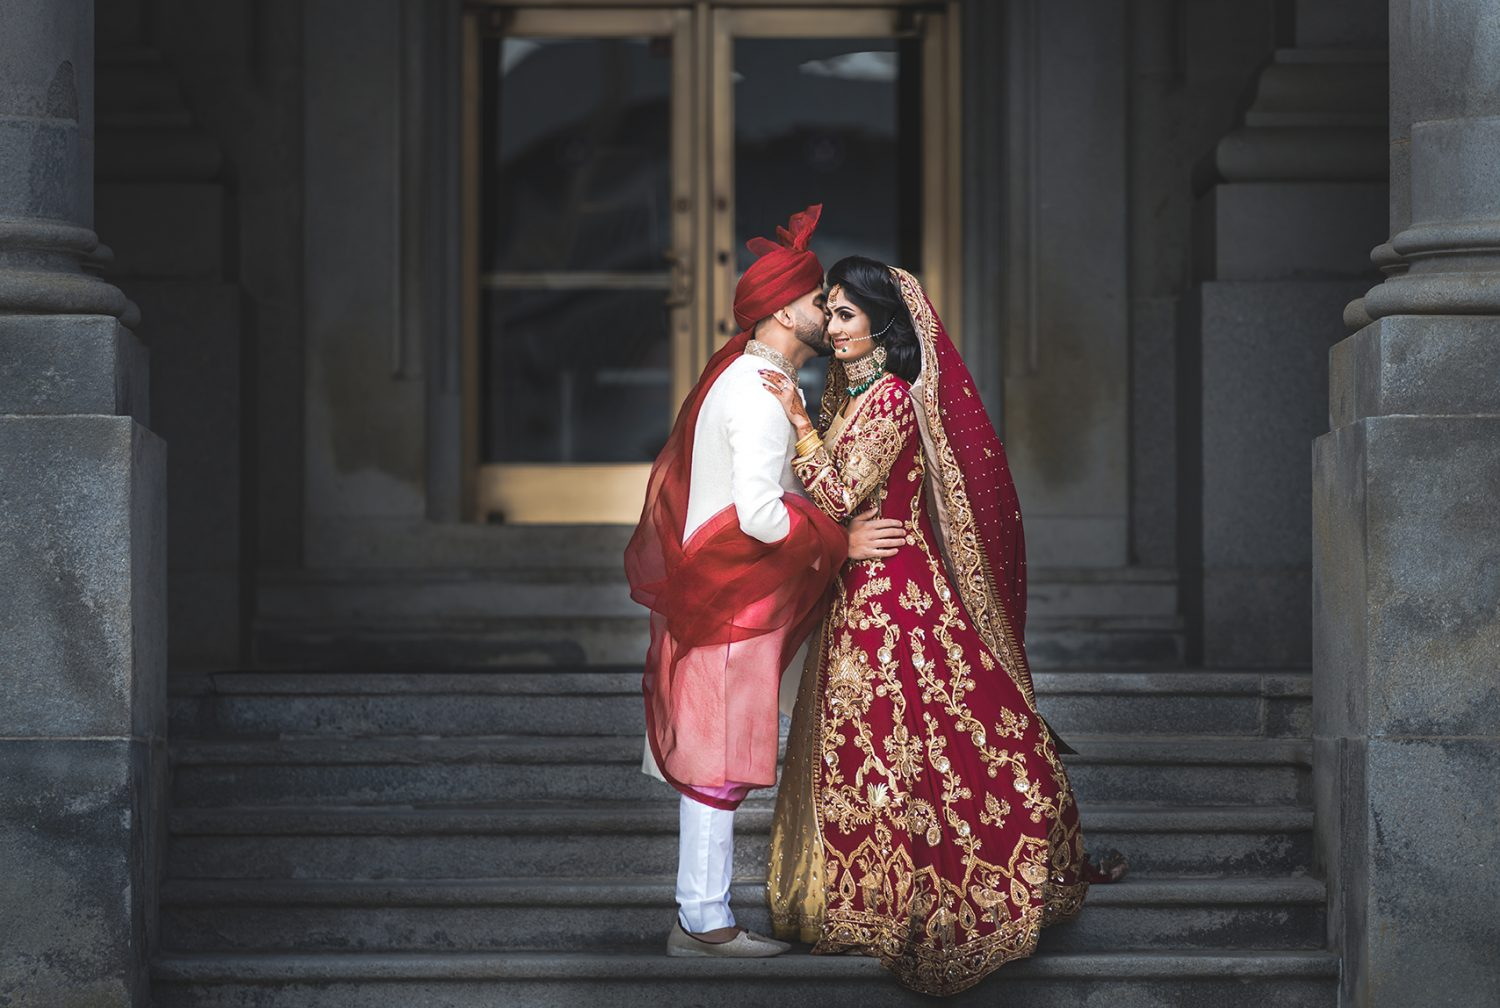 south_asian_wedding_photography_dhoom_studio_new_york86-e1573099147359 SOUTH ASIAN WEDDINGS